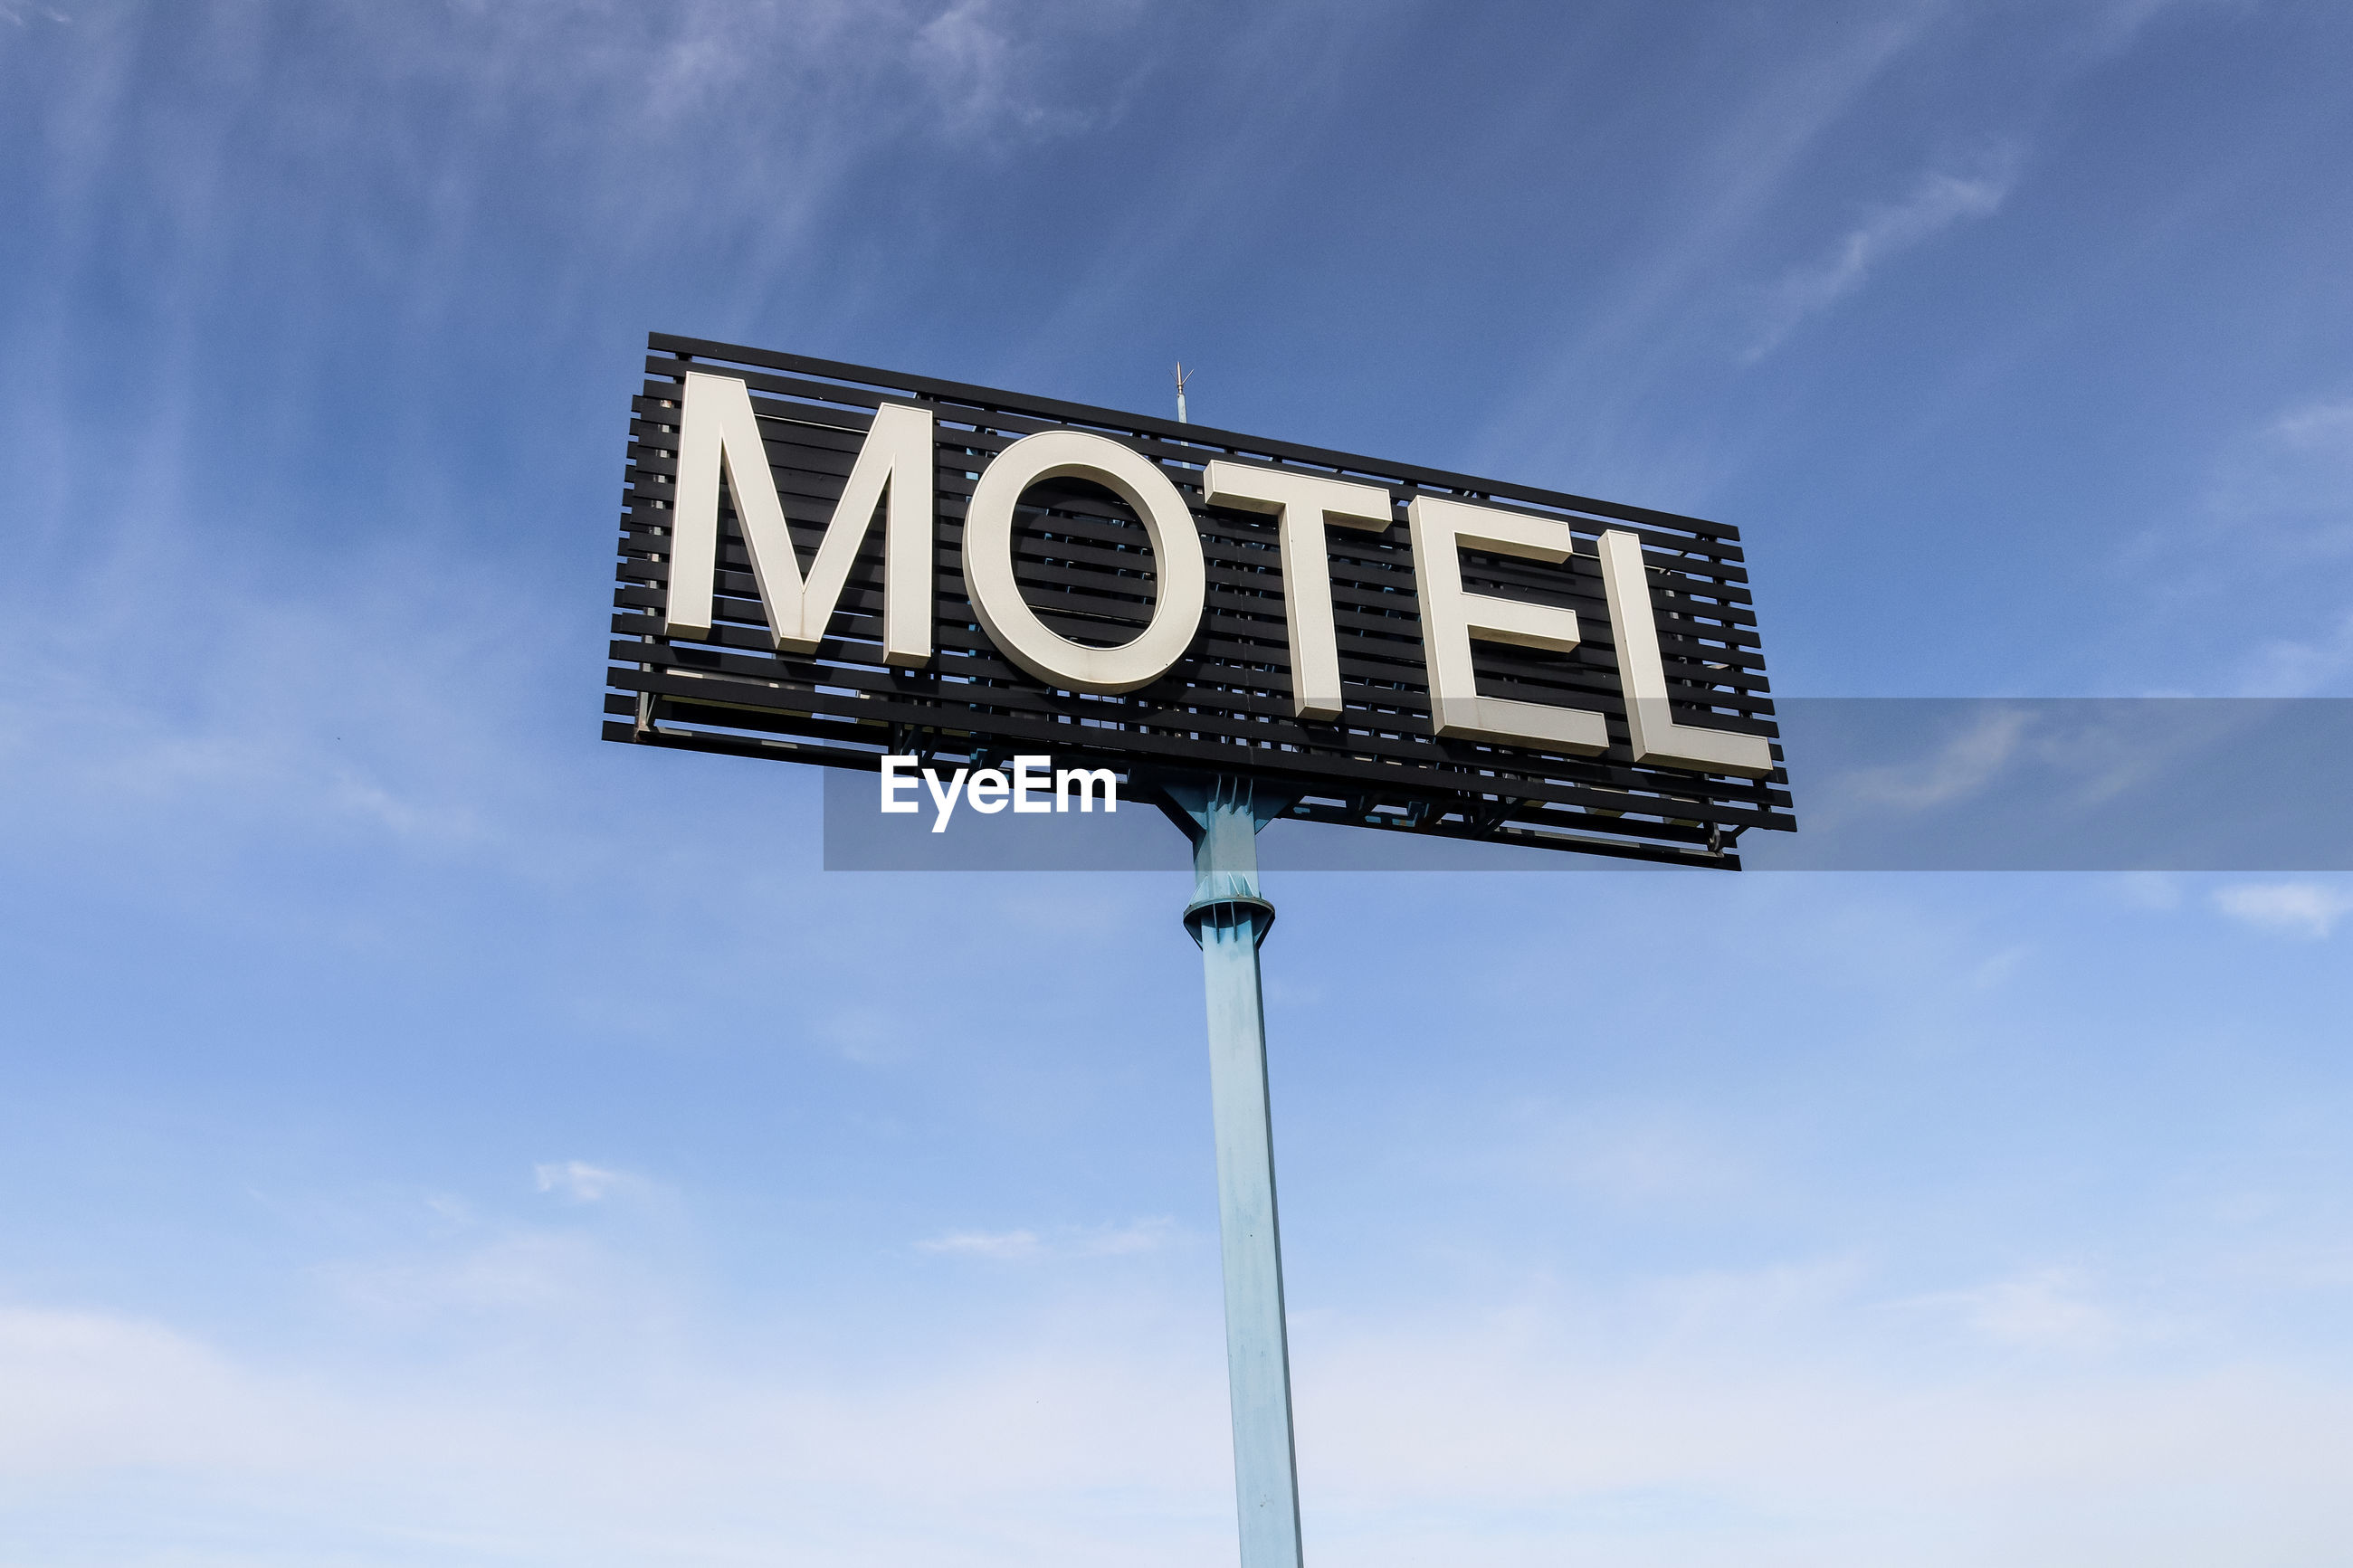 Low angle view of motel sign against blue sky